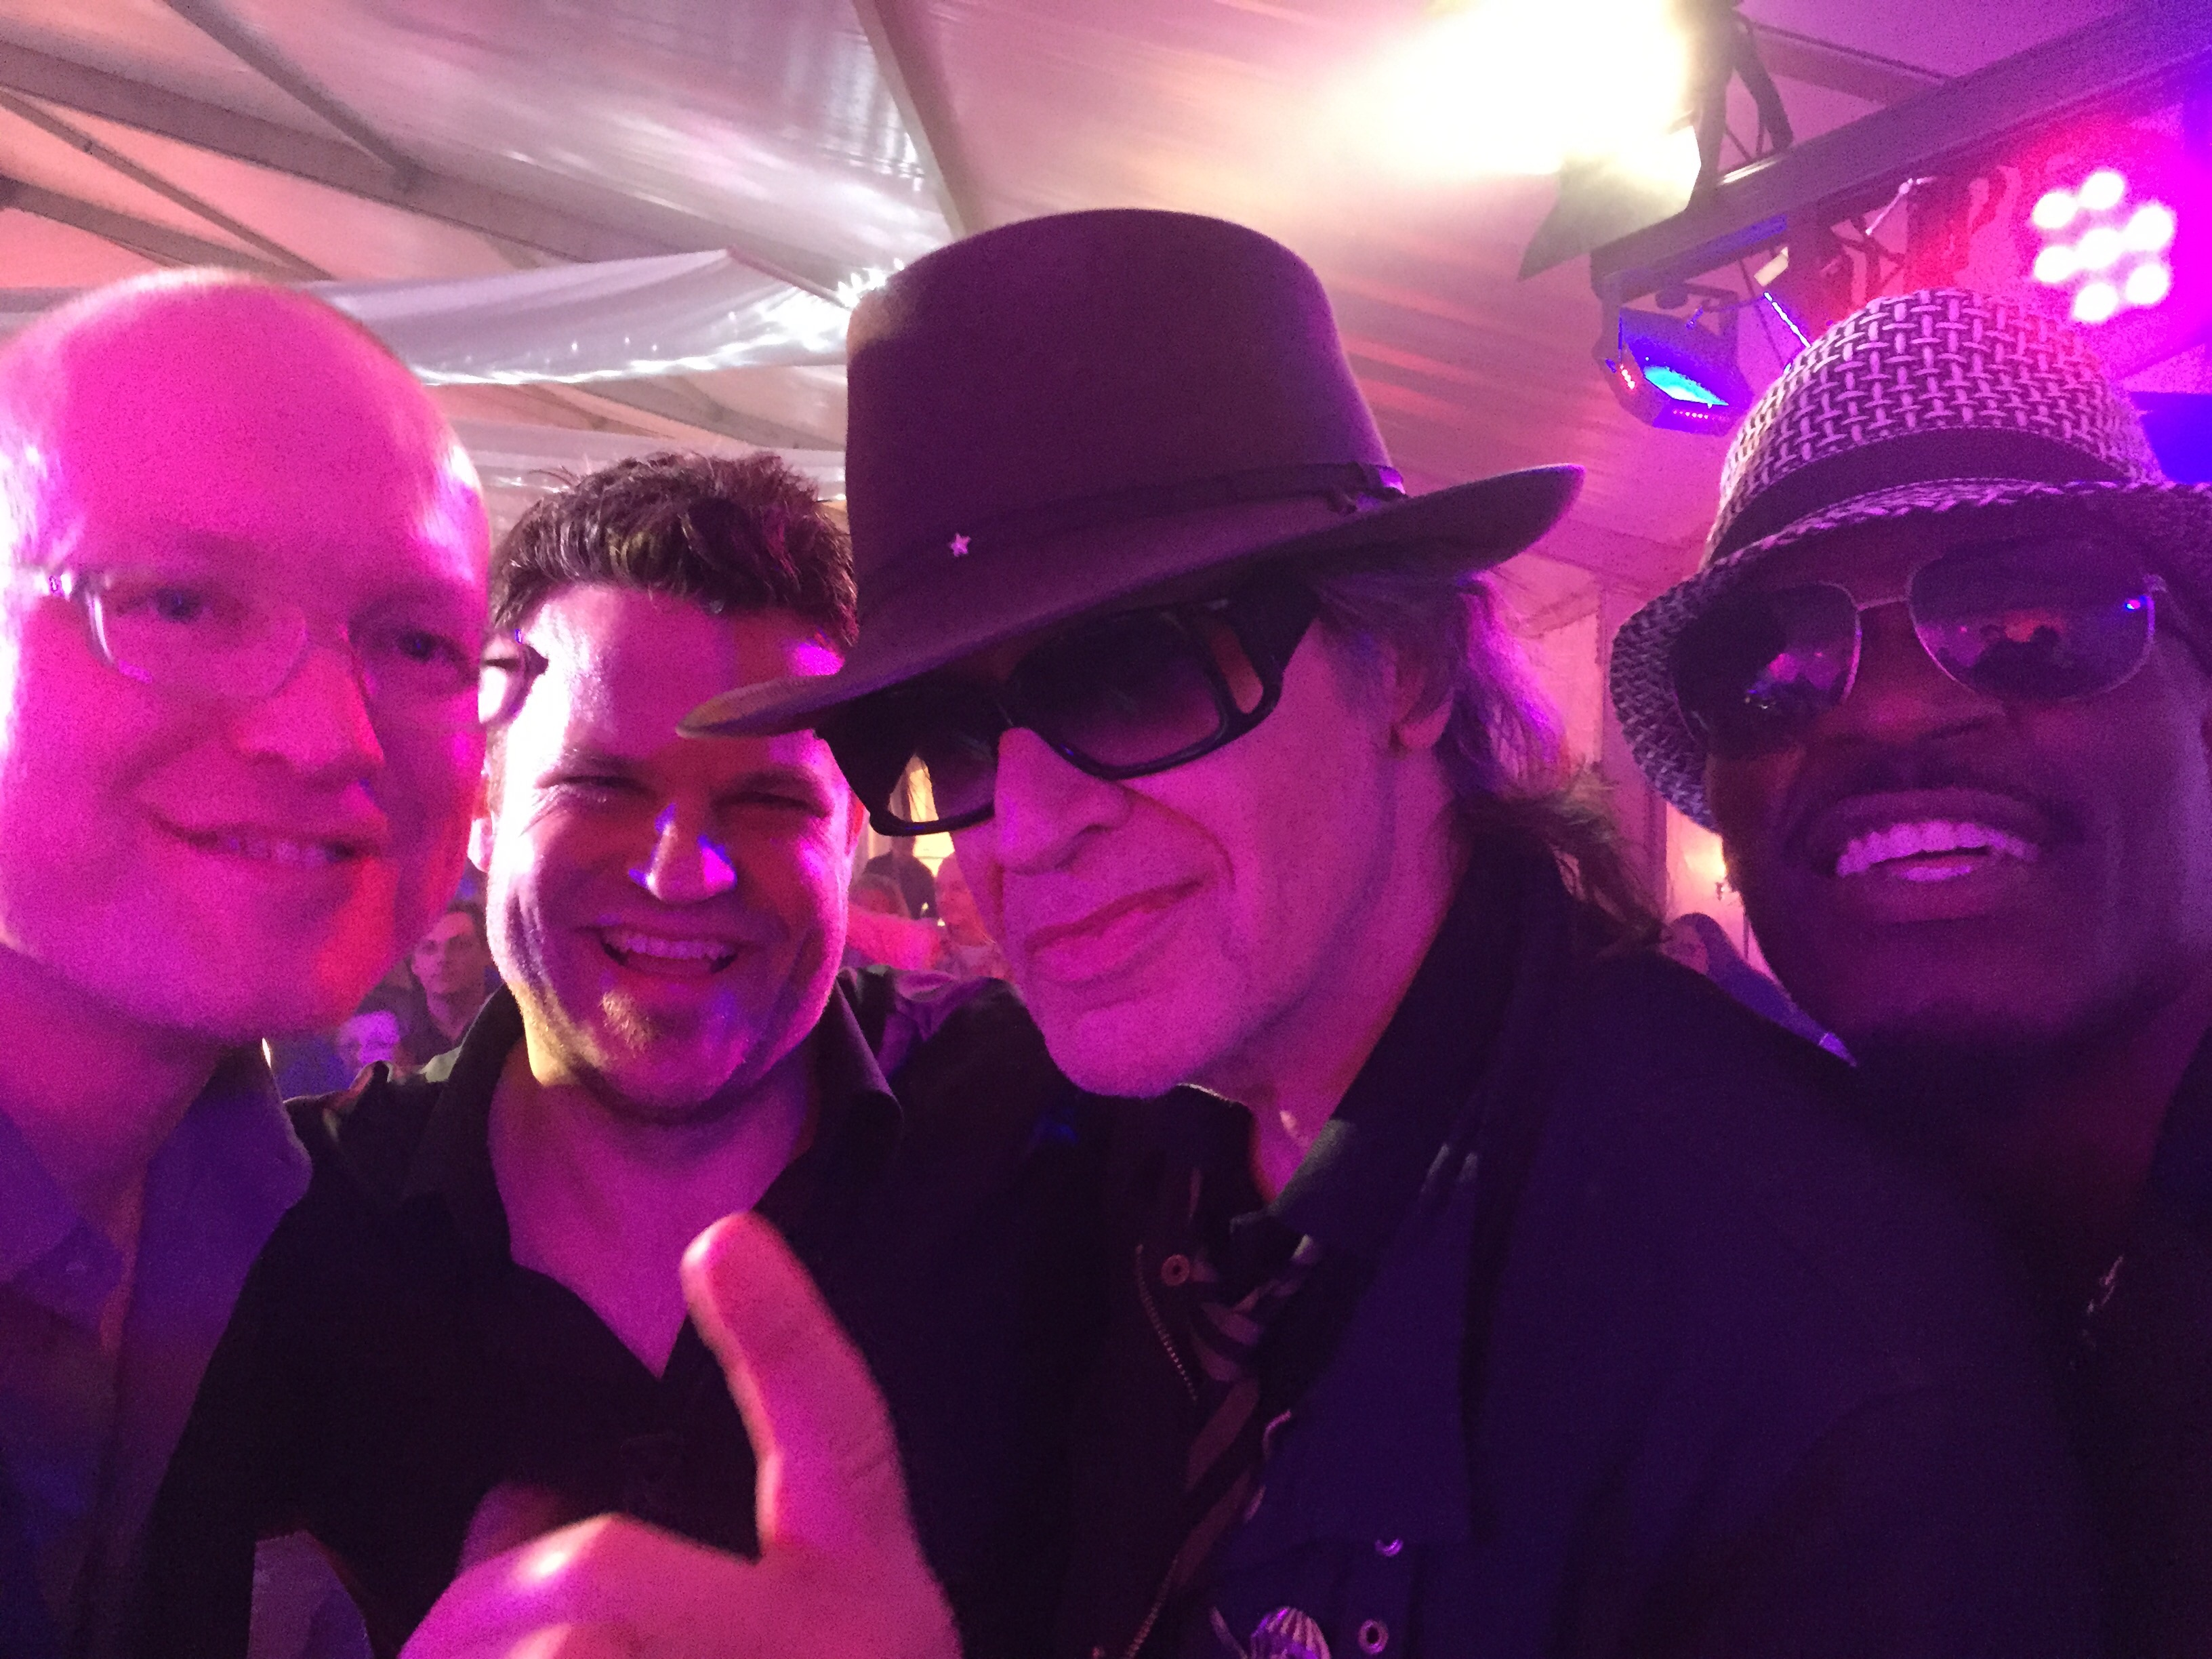 Liveband, Coverband, Partyband, ten ahead, tenahead, Walentowski, Udo Lindenberg, Helge Schneider